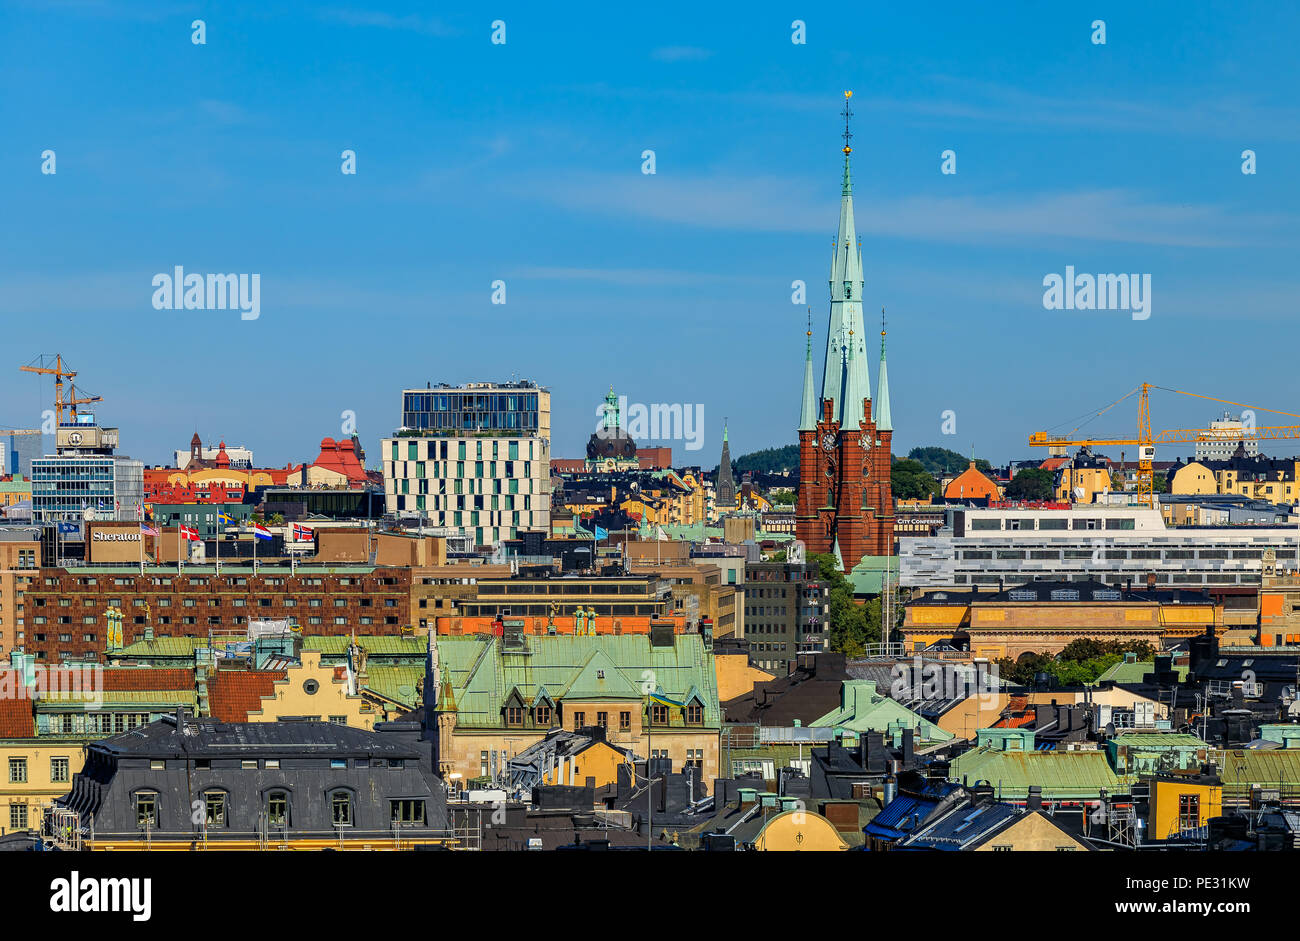 Stockholm, Sweden - August 11, 2017: Rooftops of traditional gothic buildings in the old town part of Sodermalm island - Stock Image